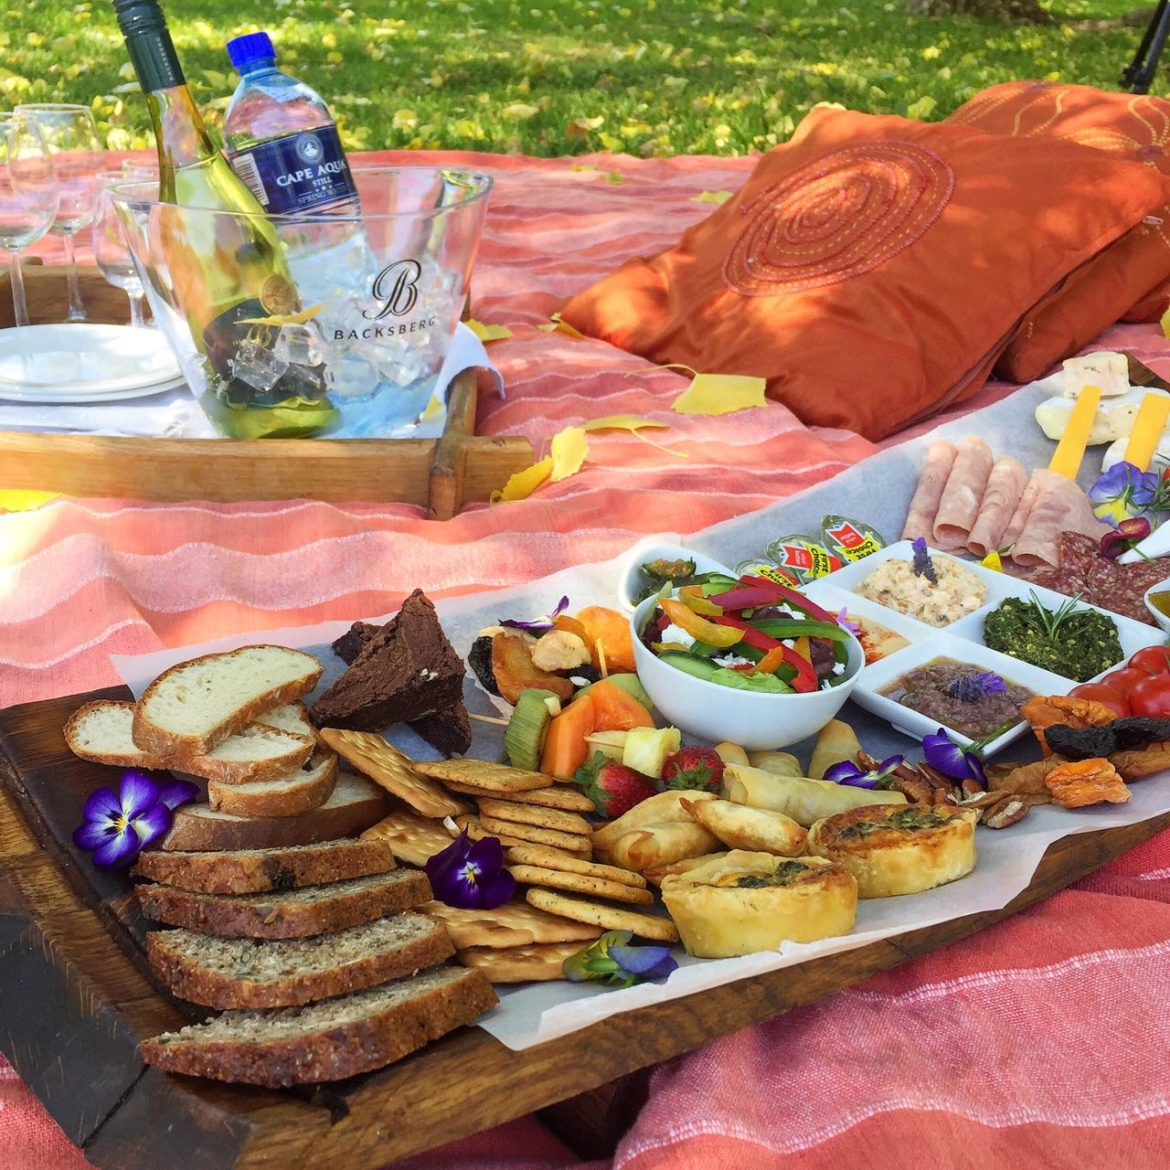 Backsberg-Picnic-Platter-for-Two.jpg